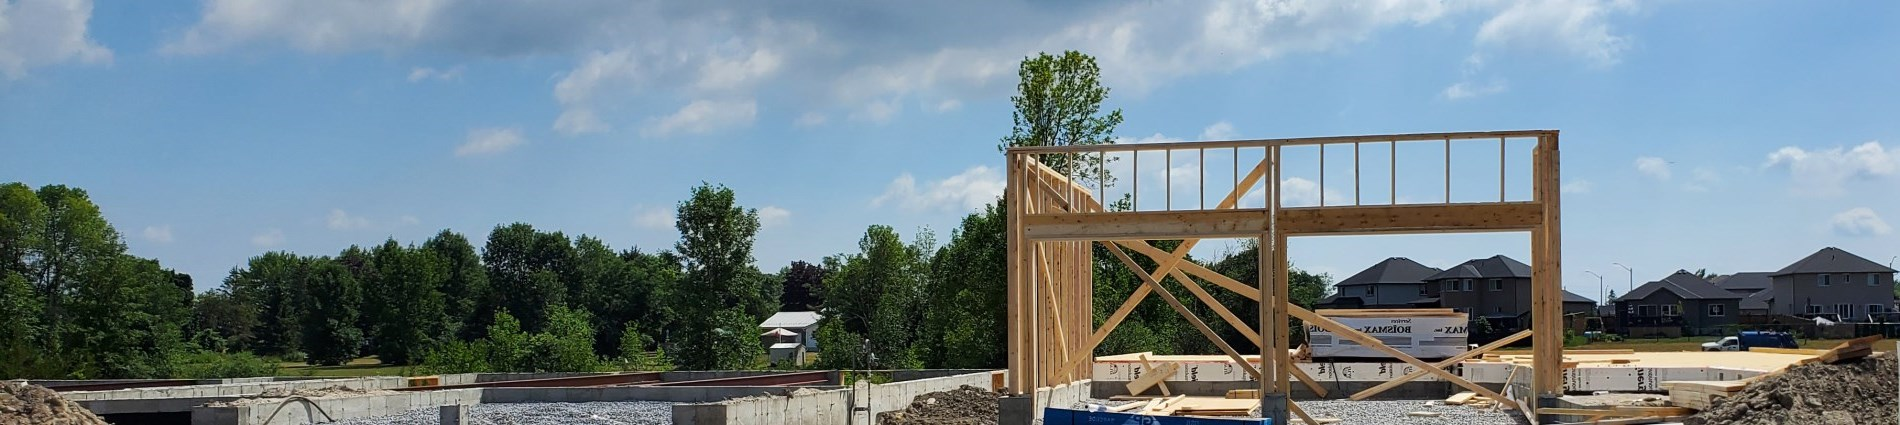 Landscape photo of subdivision and house frame